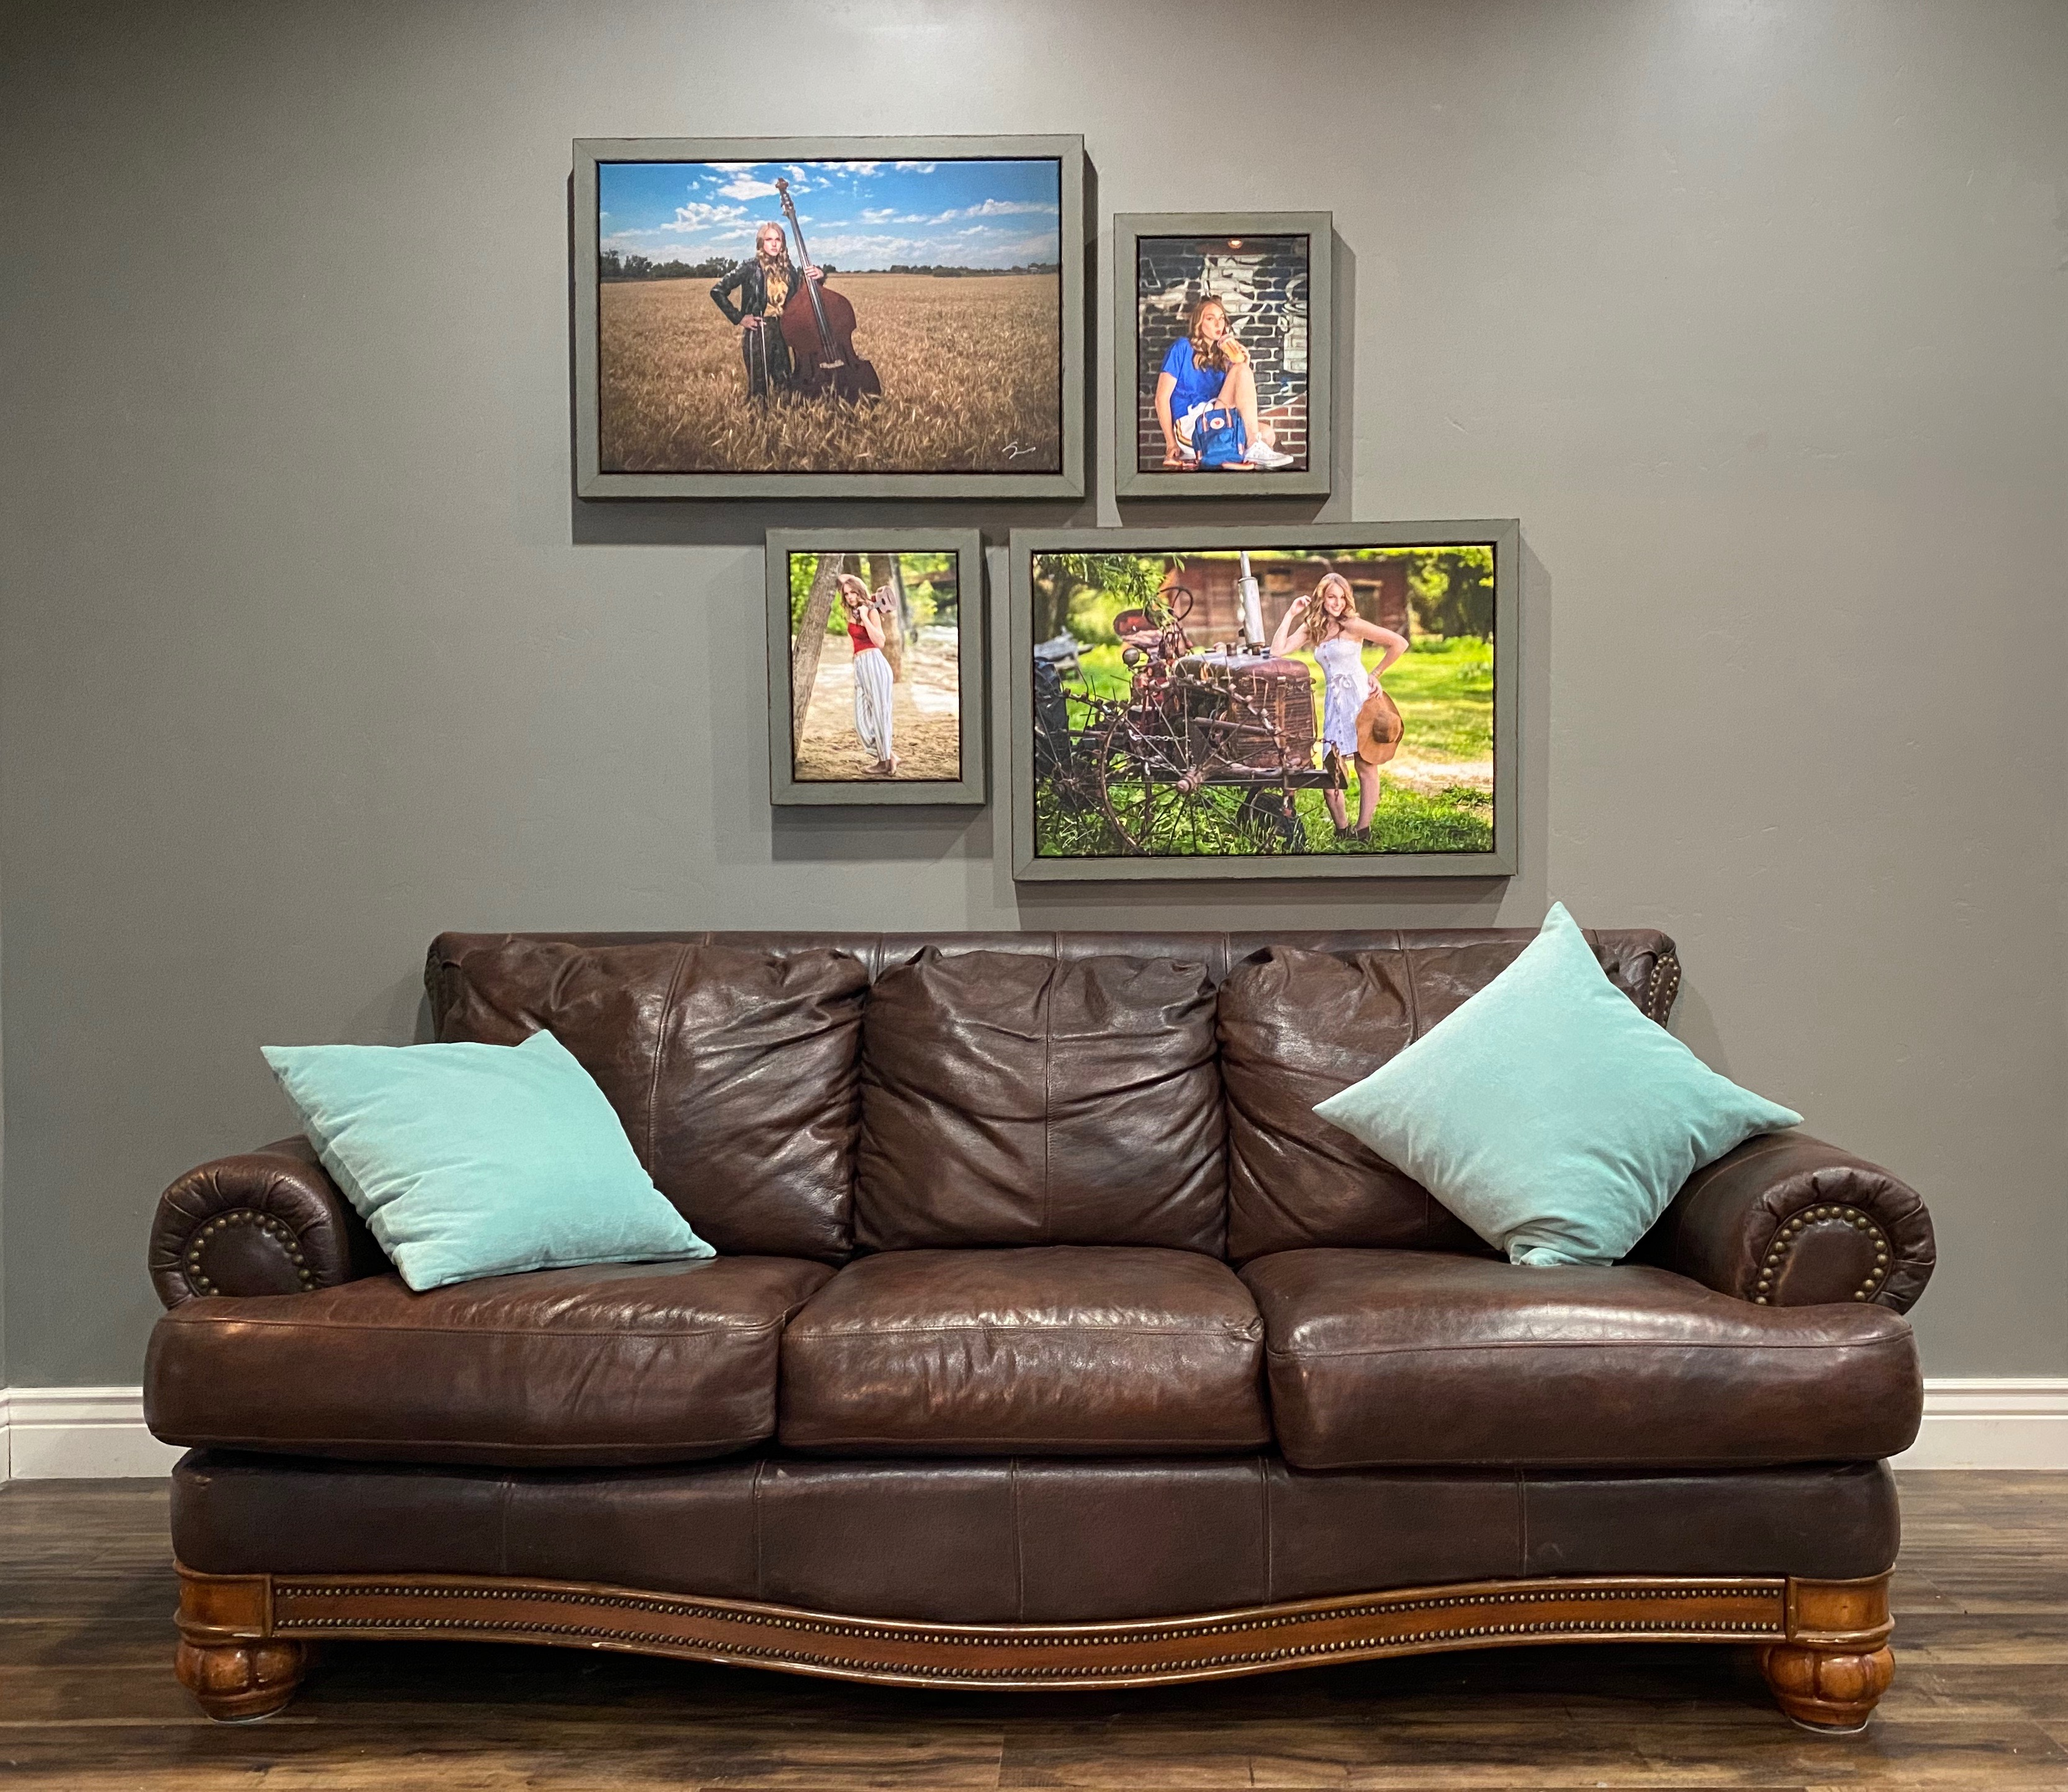 Framed senior portraits on a wall above a leather couch